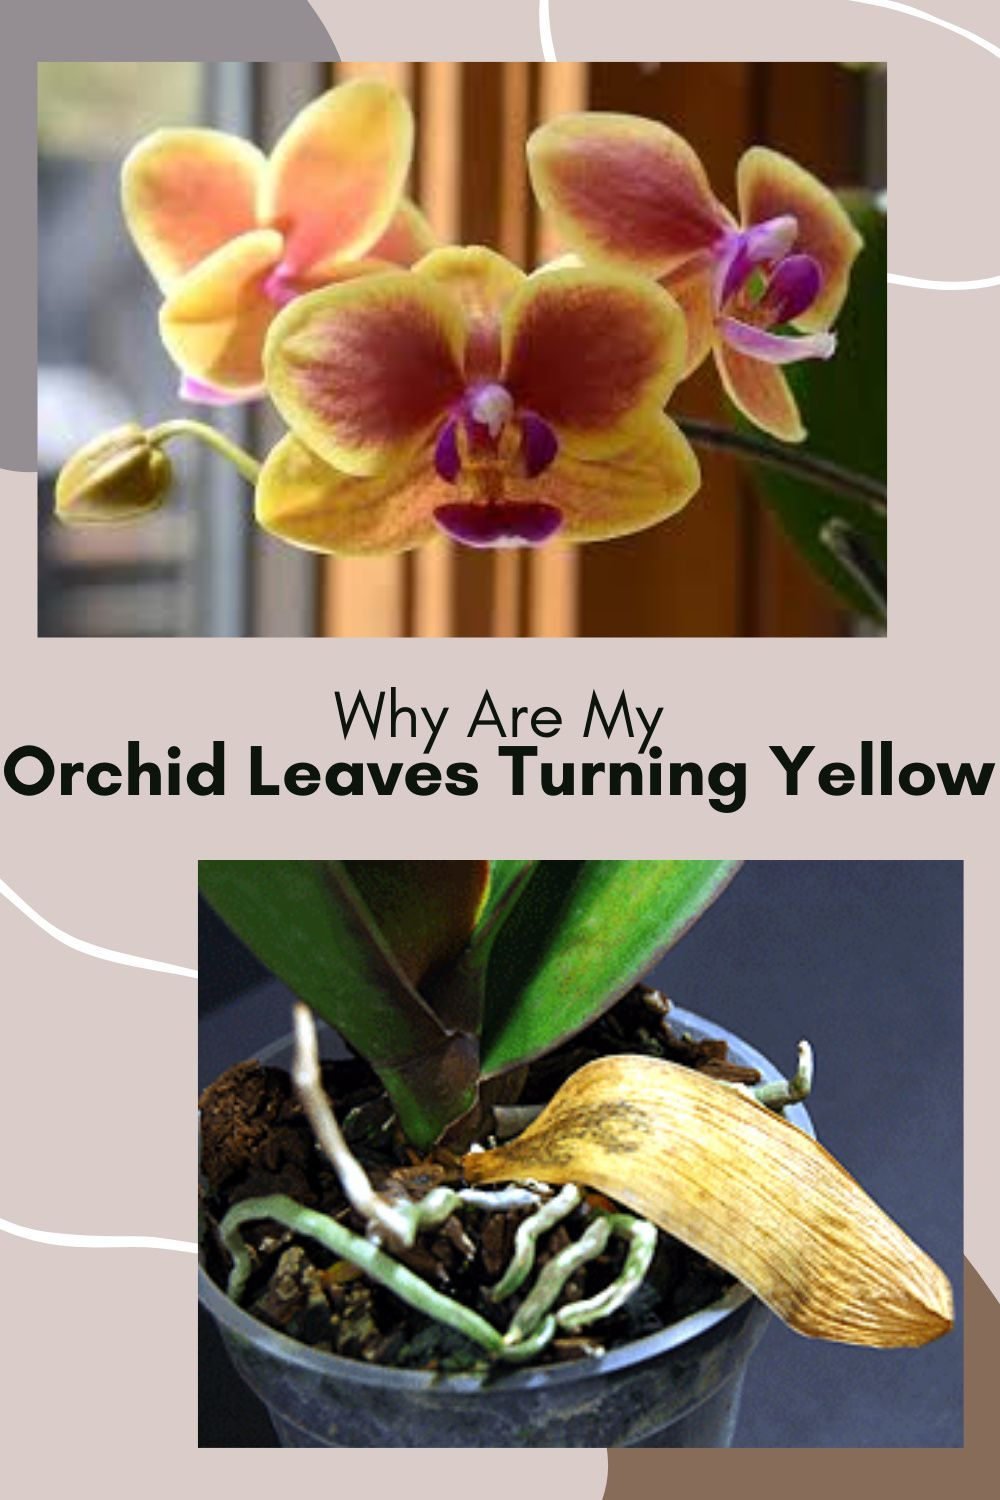 Orchid Leaves Turning Yellow Causes And Solutions Indoor Garden Nook In 2020 Orchid Leaves Turning Yellow Orchid Leaves Plant Leaves Turning Yellow